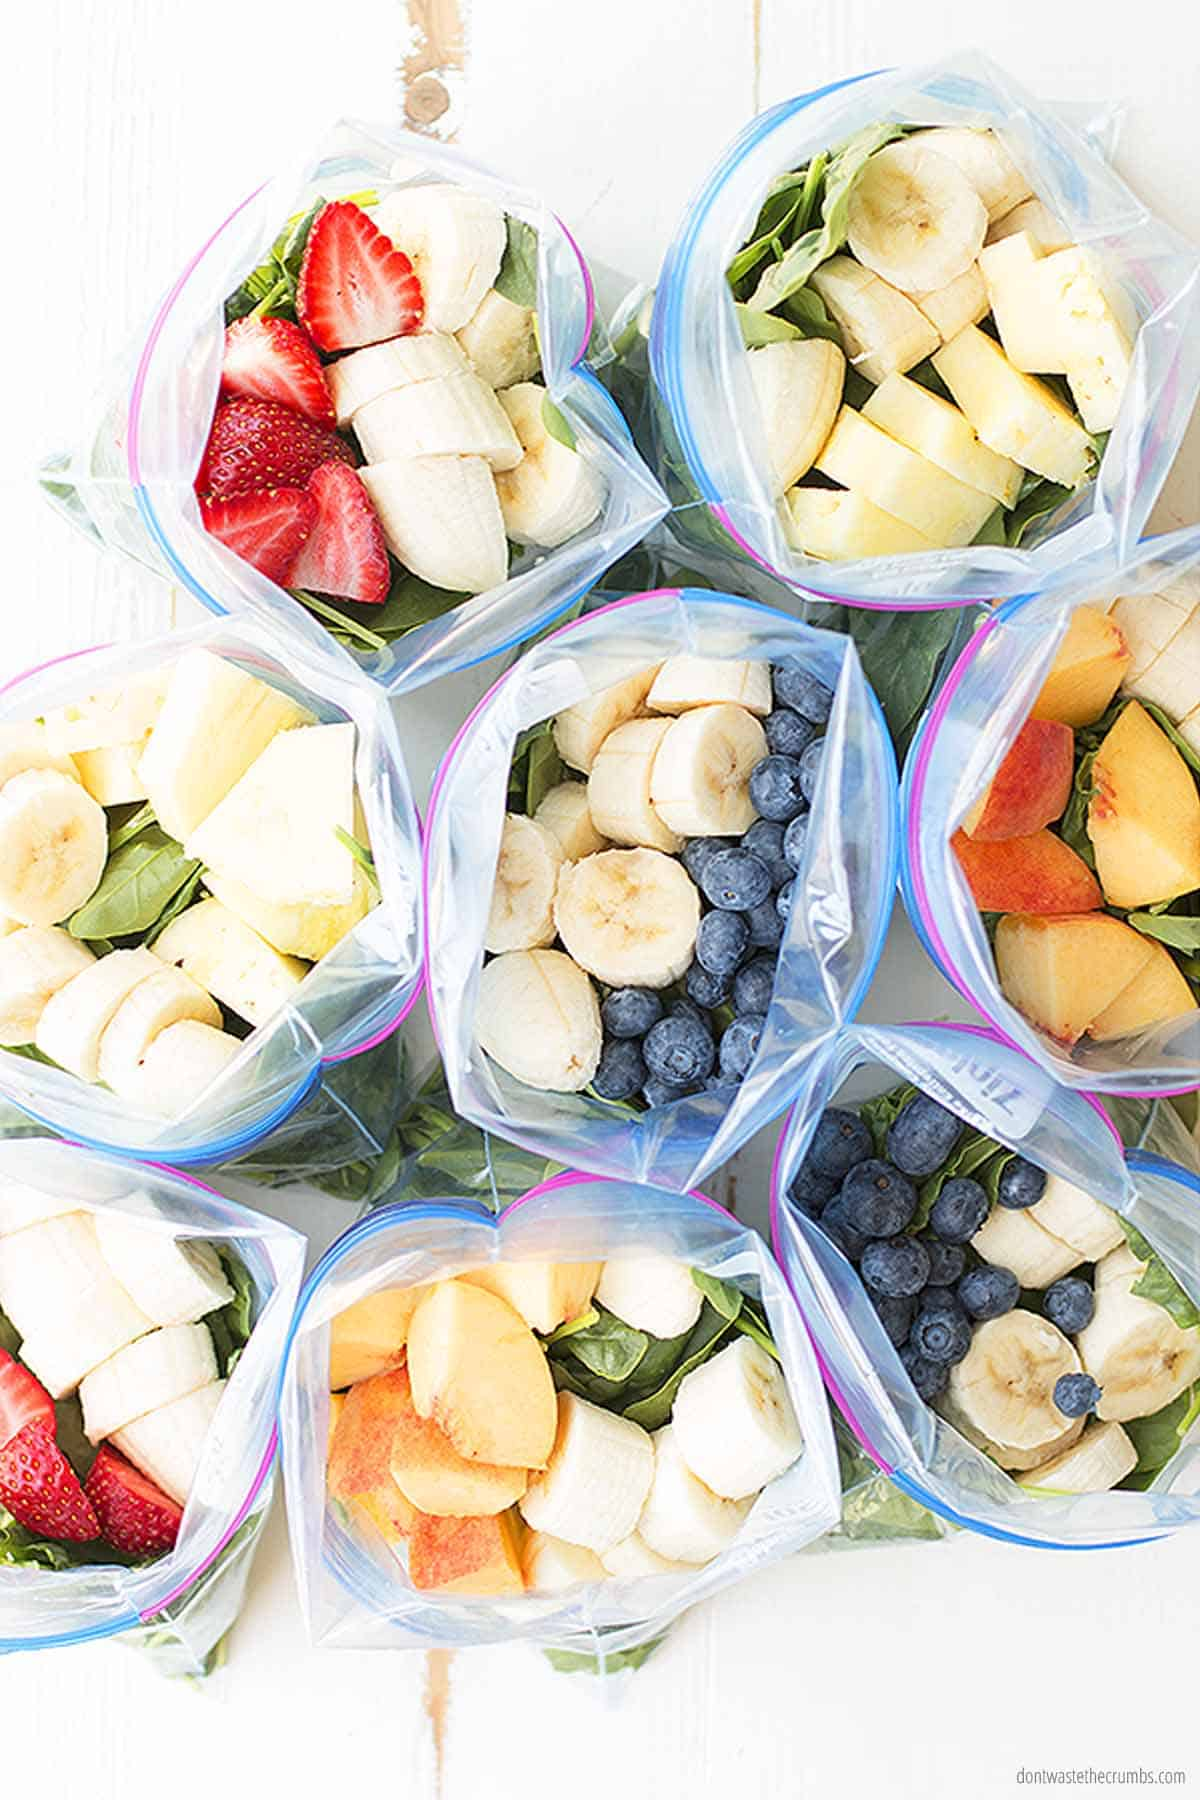 Eight freezer bags with mixed fresh fruits and greens, like strawberries, blueberries, bananas, peaches, and greens like spinach and baby kale. These filled freezer bags are ready to be frozen into freezer smoothie packs.